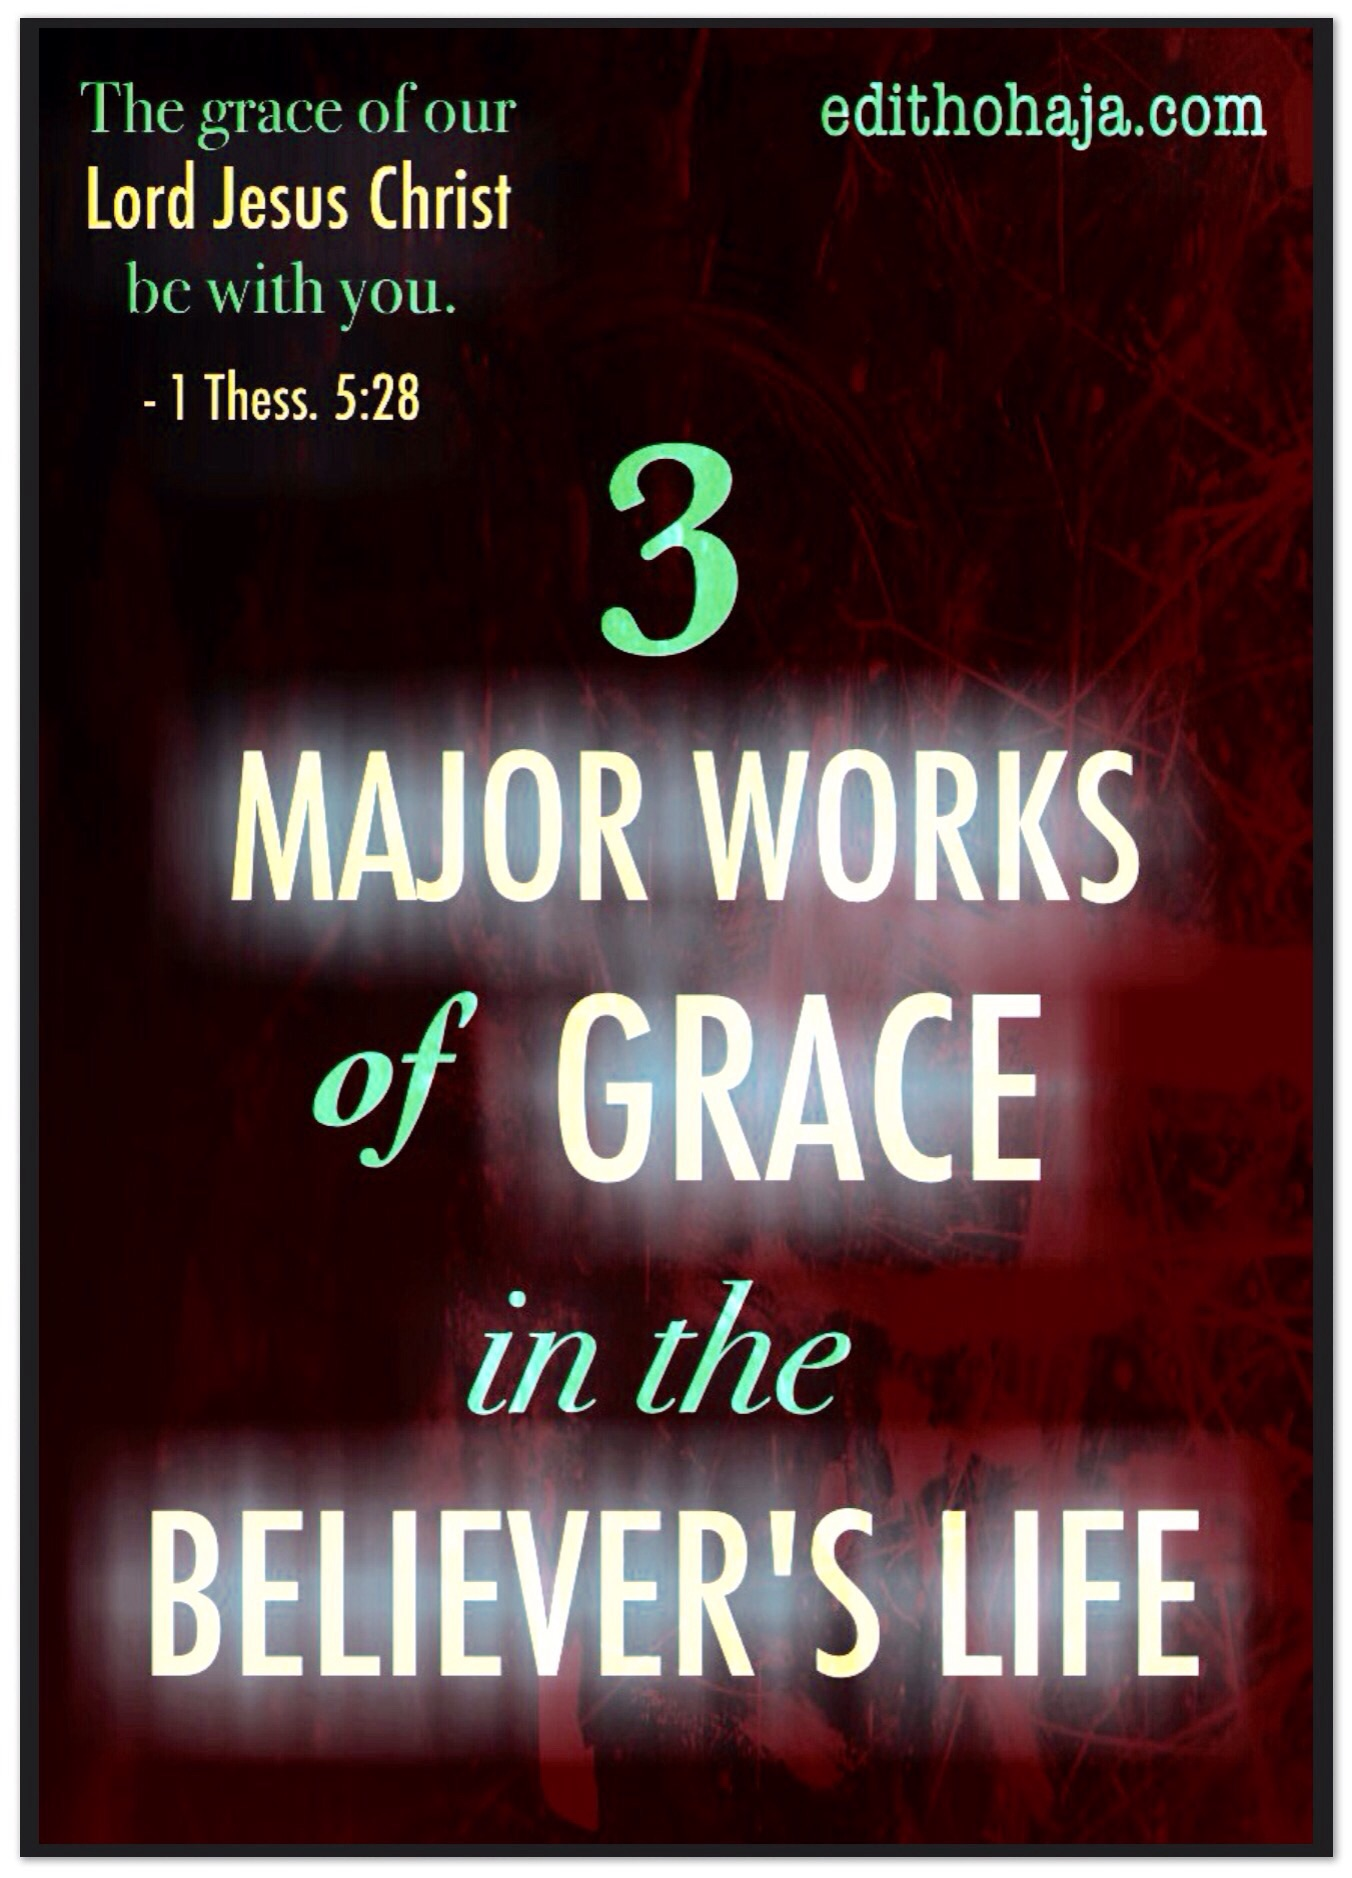 3 MAJOR WORKS OF GRACE IN THE BELIEVER'S LIFE